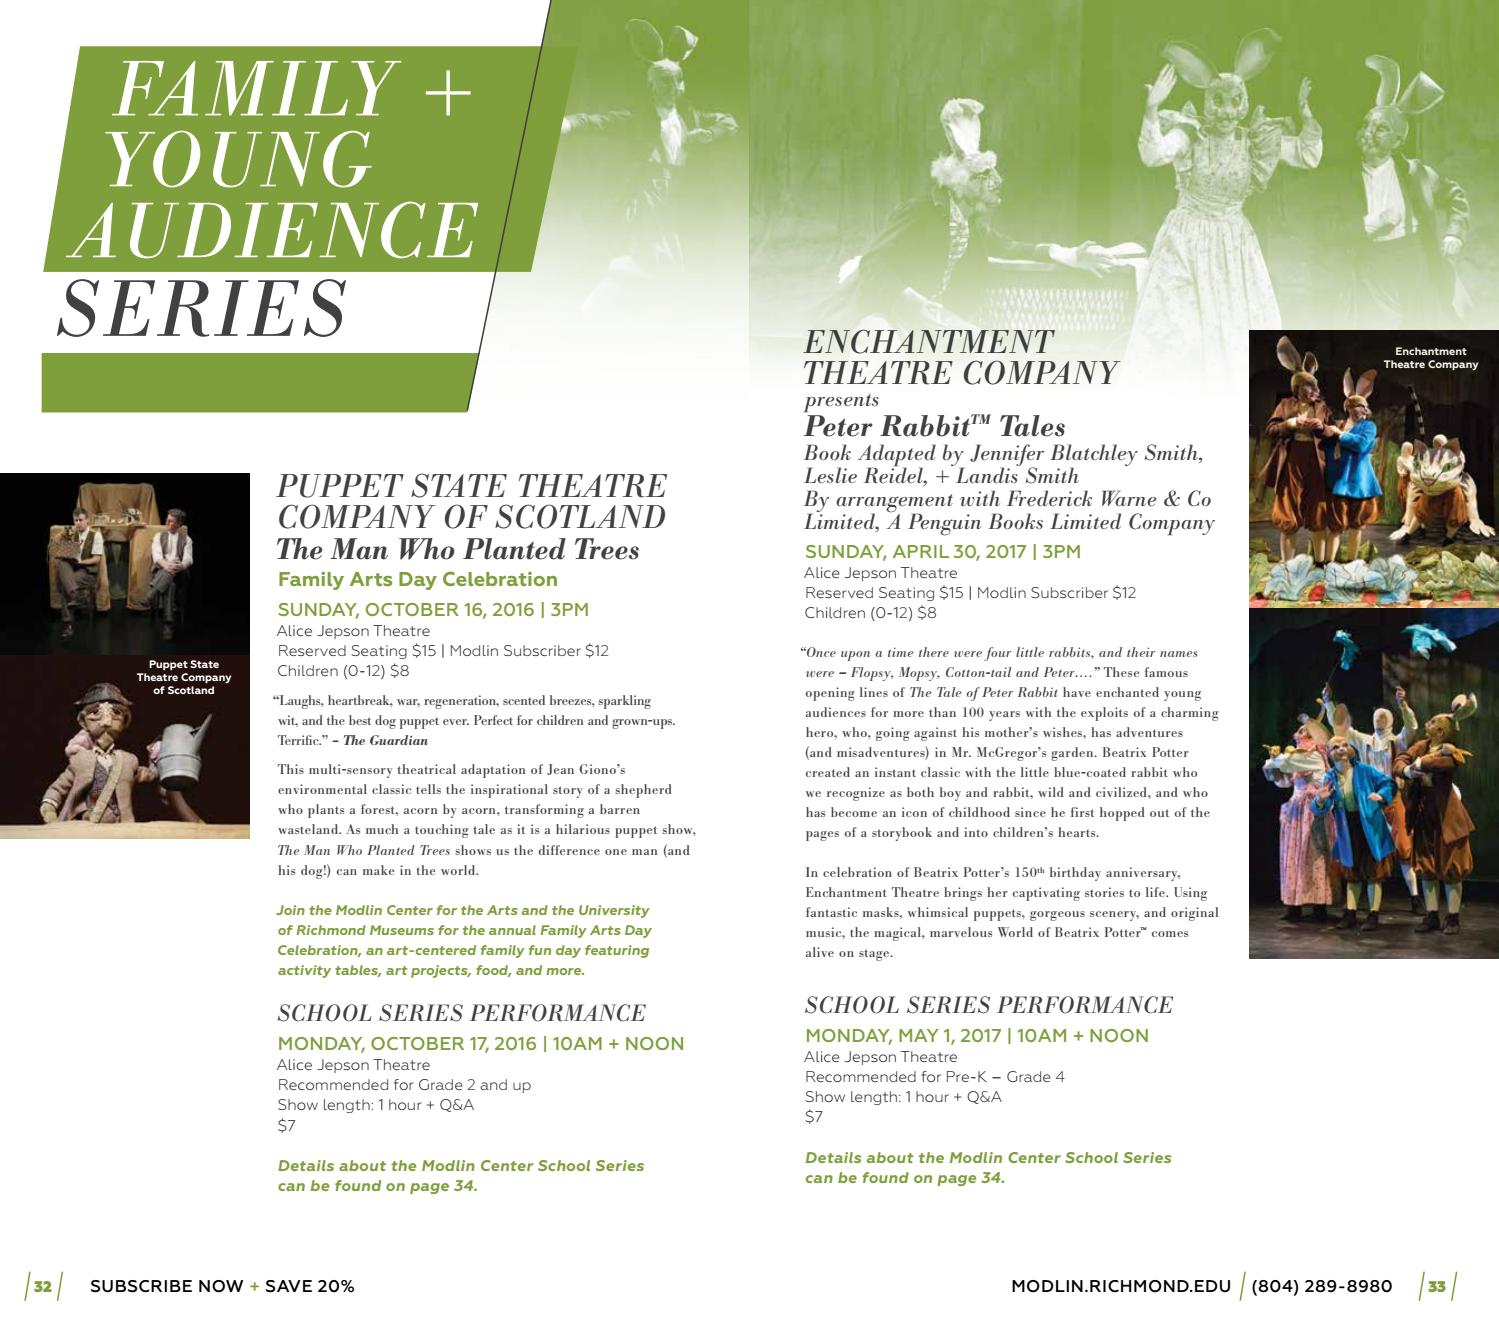 2016 2017 20th Anniversay Season Brochure By Modlin Center For The Arts Issuu